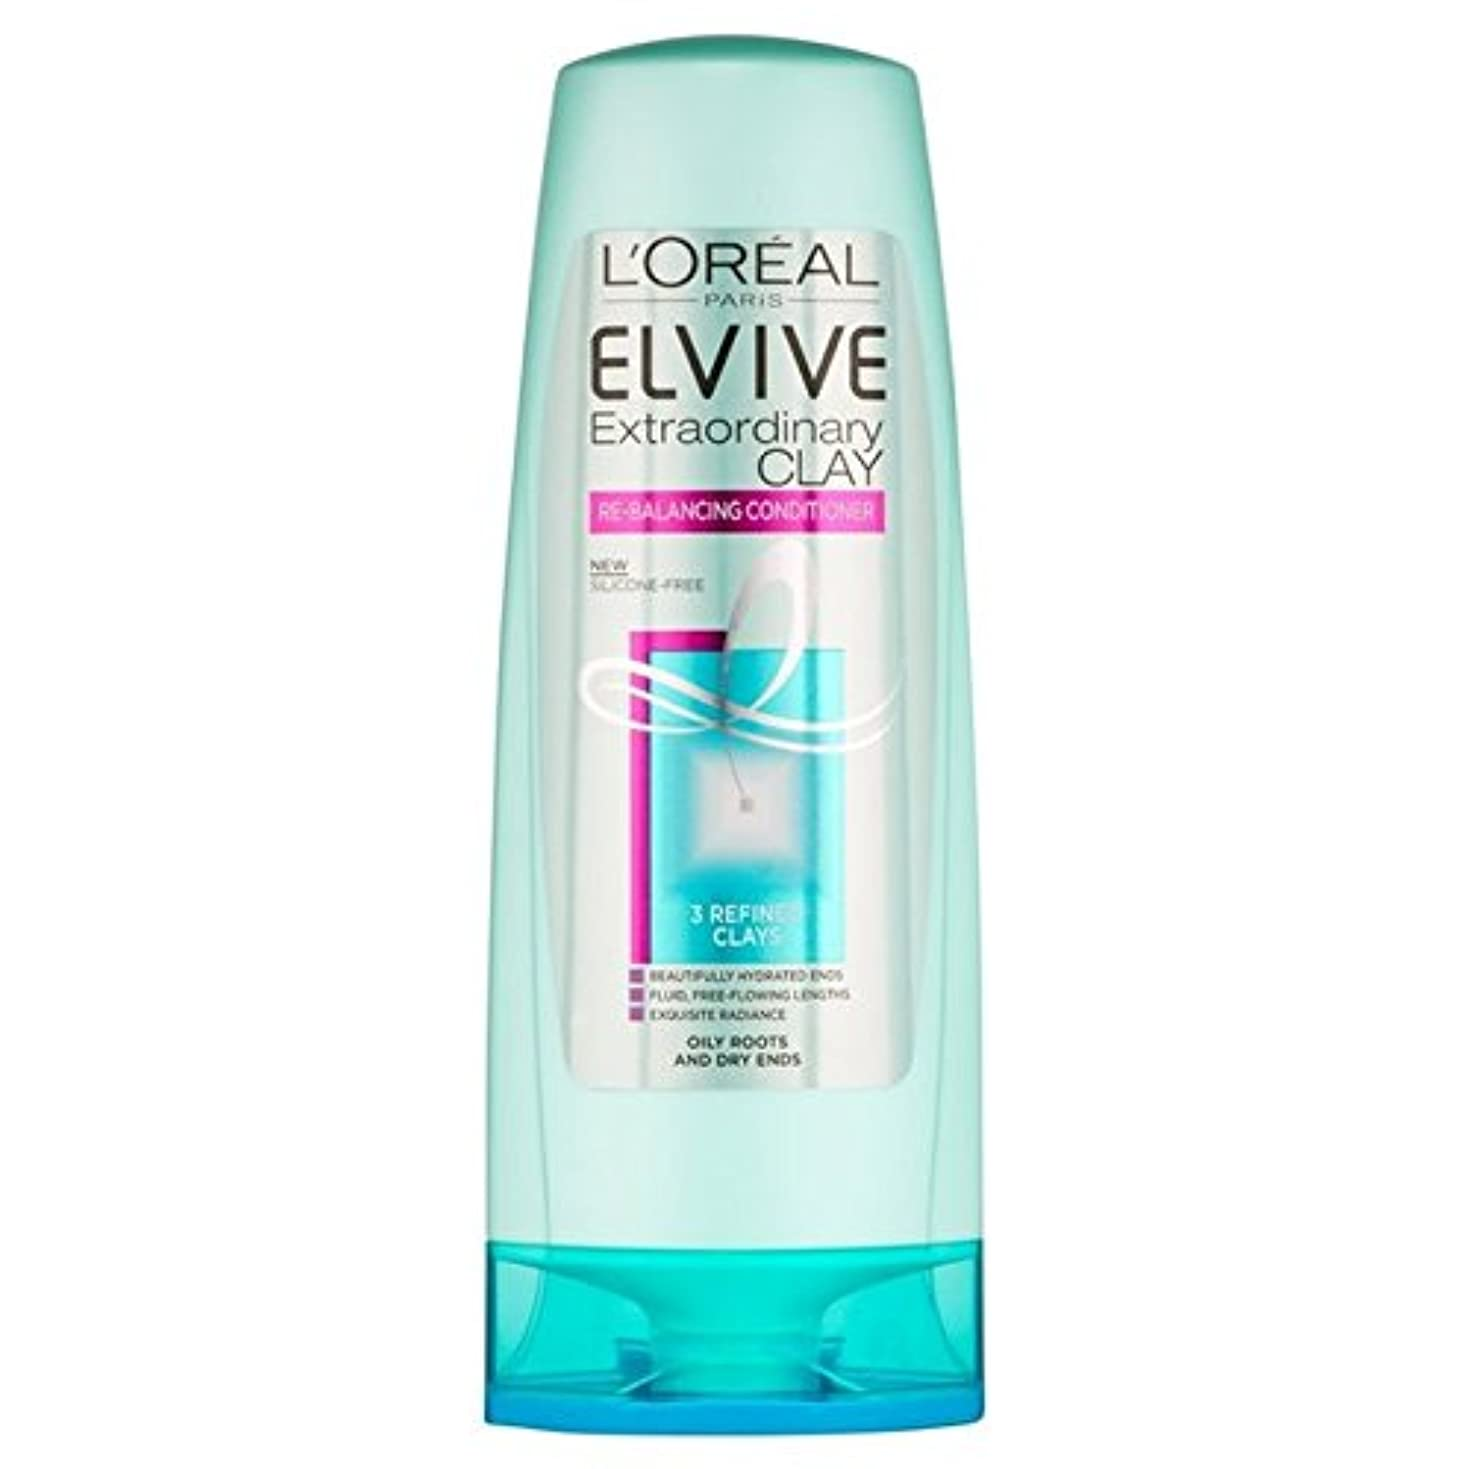 L'Oreal Paris Elvive Extraordinary Clay Re-Balancing Conditioner 250ml (Pack of 6) - ロレアルパリ臨時粘土再バランシングコンディショナー...